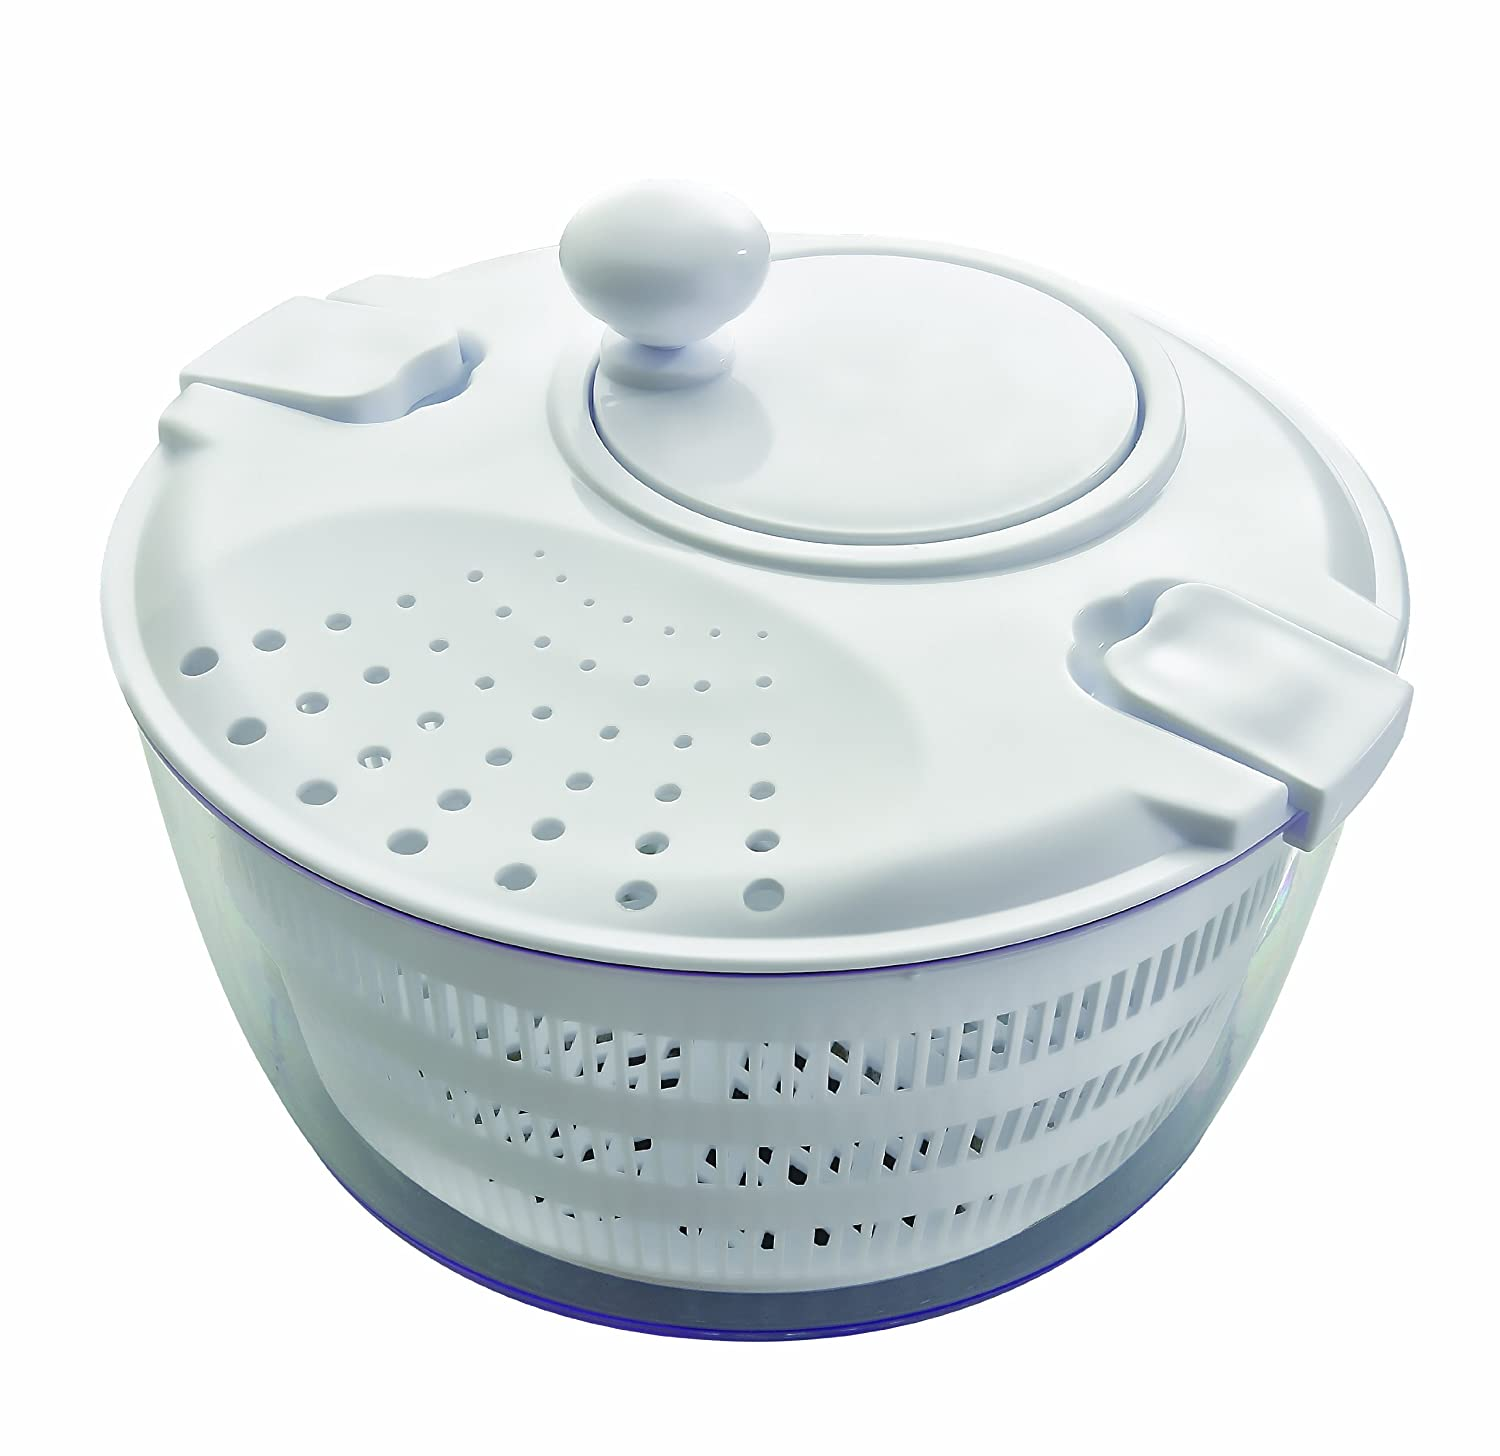 Amazon.com: Big Boss Vegetable Grater and Salad Spinner, 8-Piece Set ...